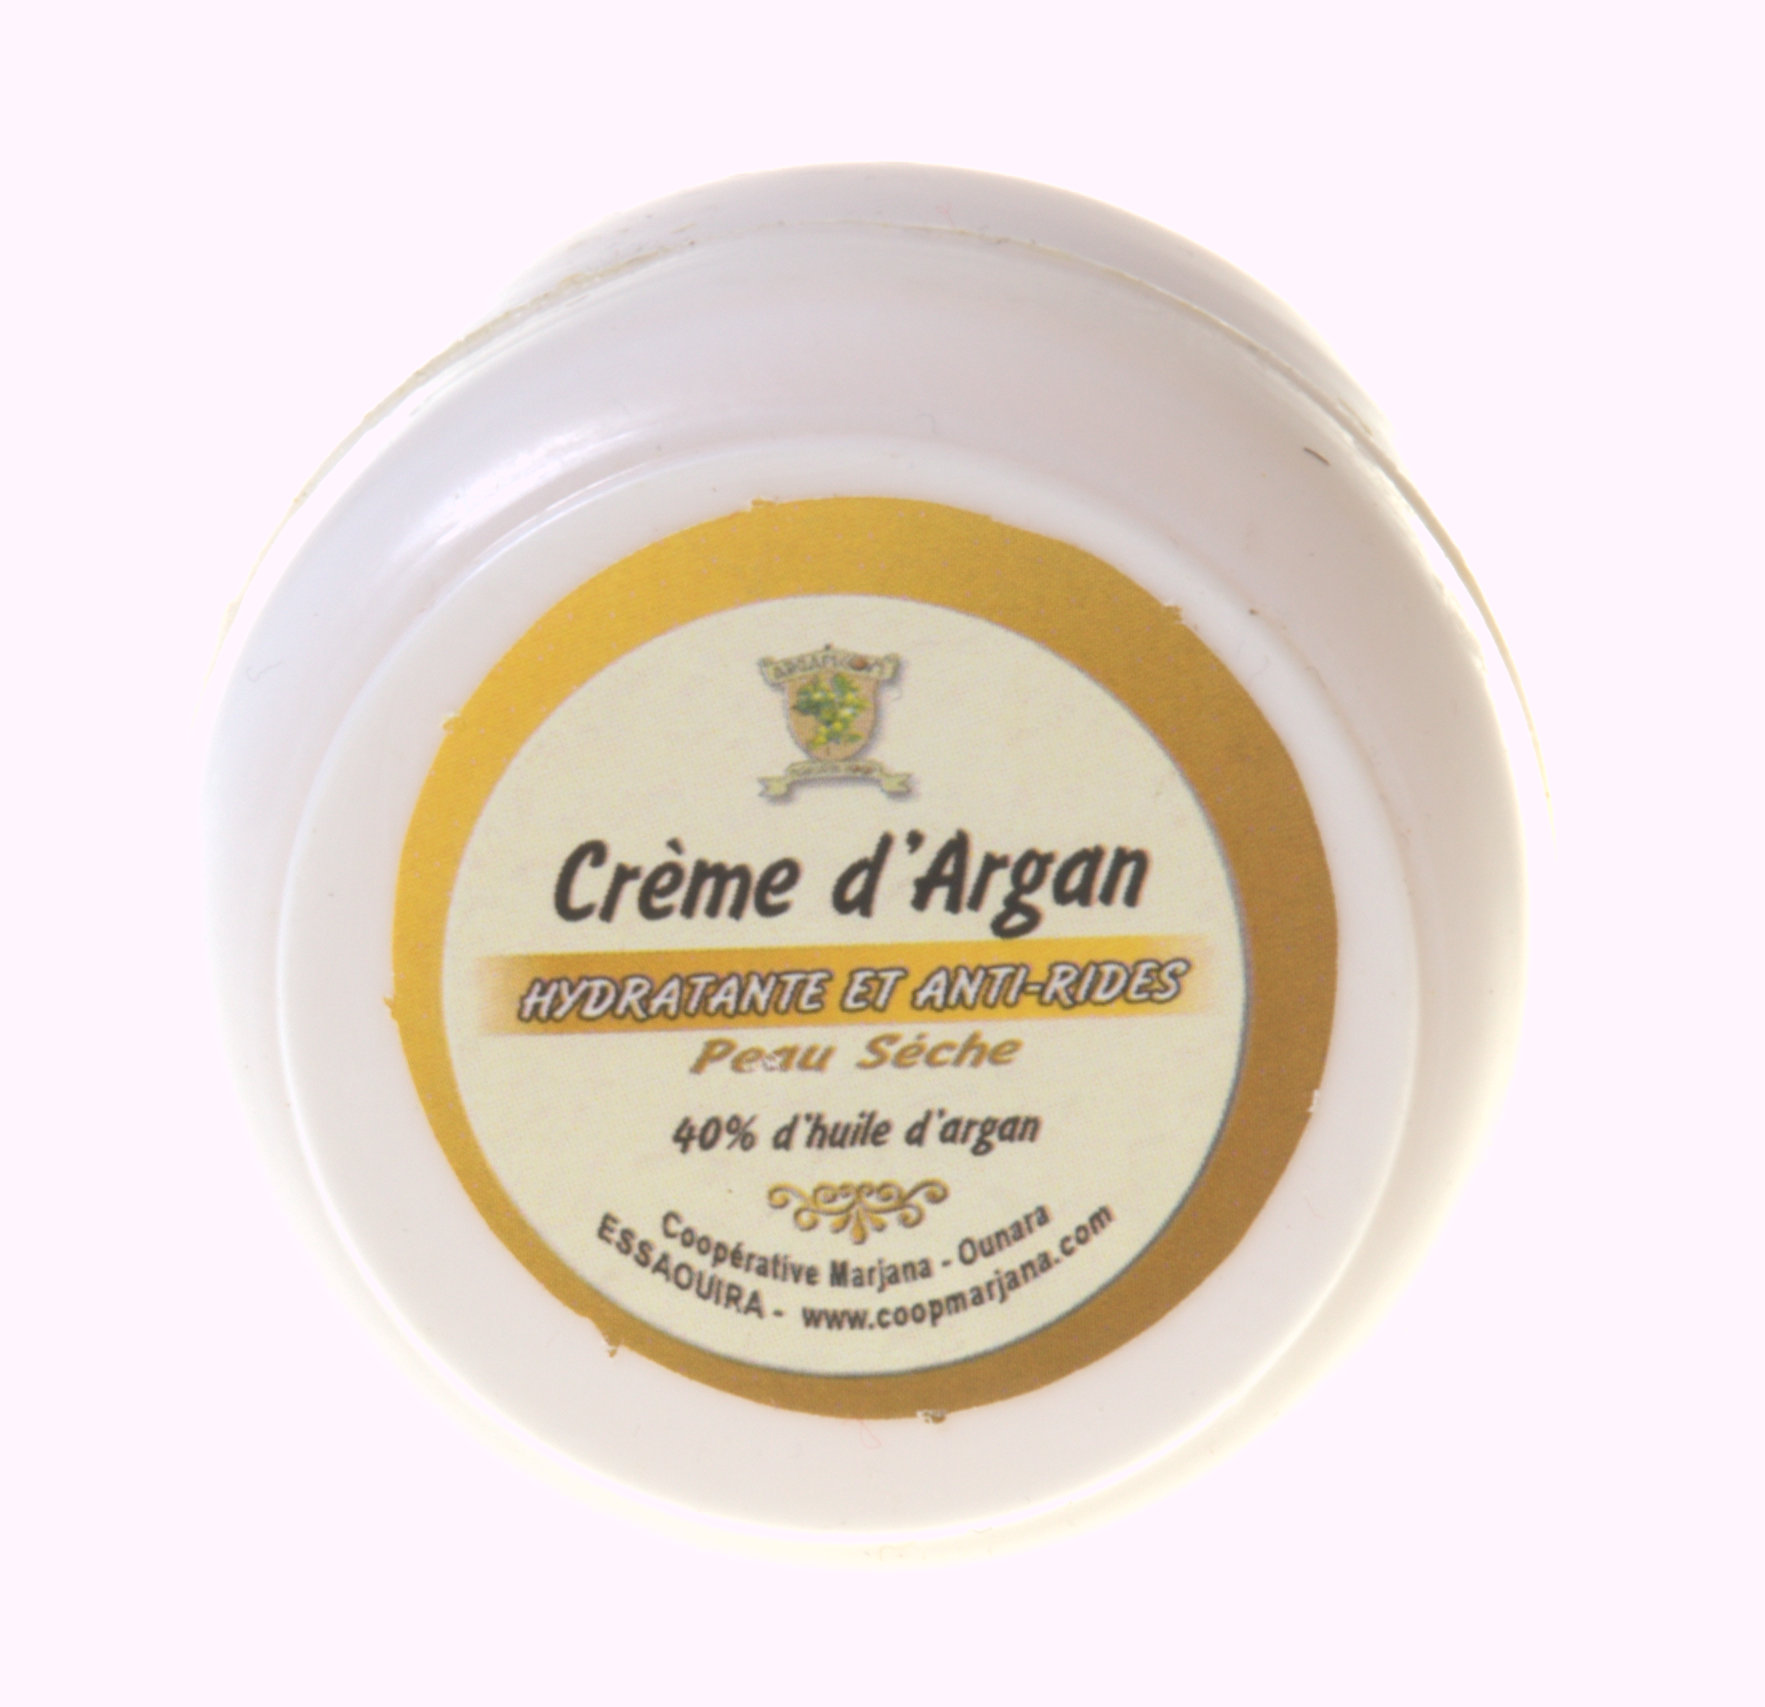 Organic argan oil facial cream for dry skins